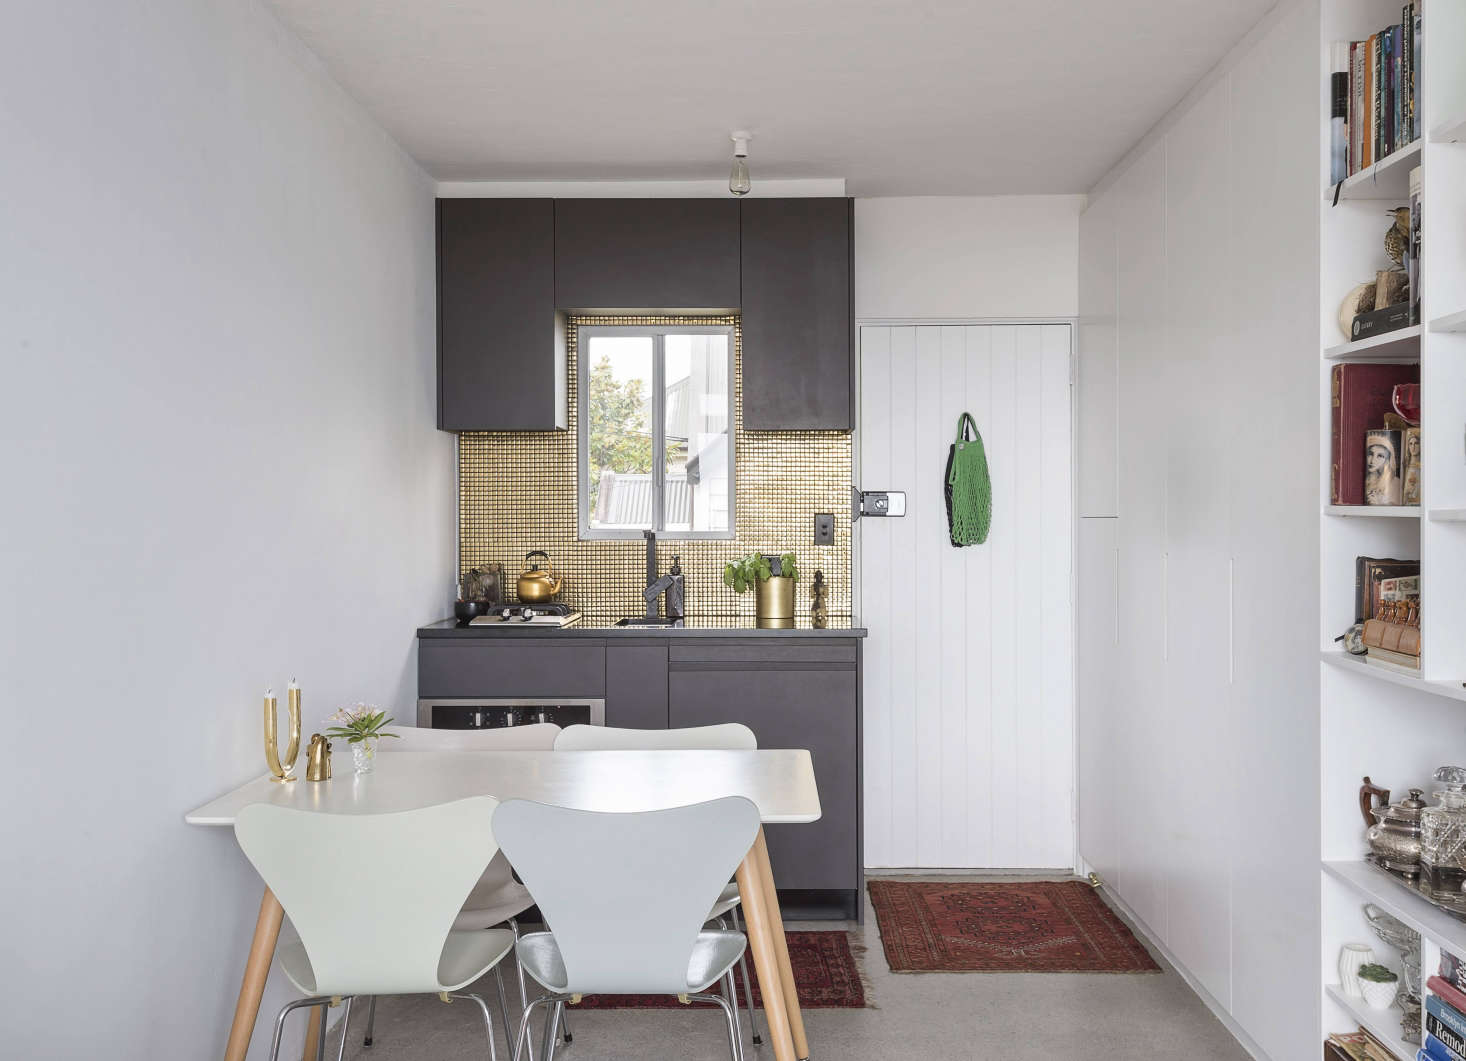 Expert Advice The New Kitchenette 11 Tips for an Efficient Small Kitchen  Remodelista